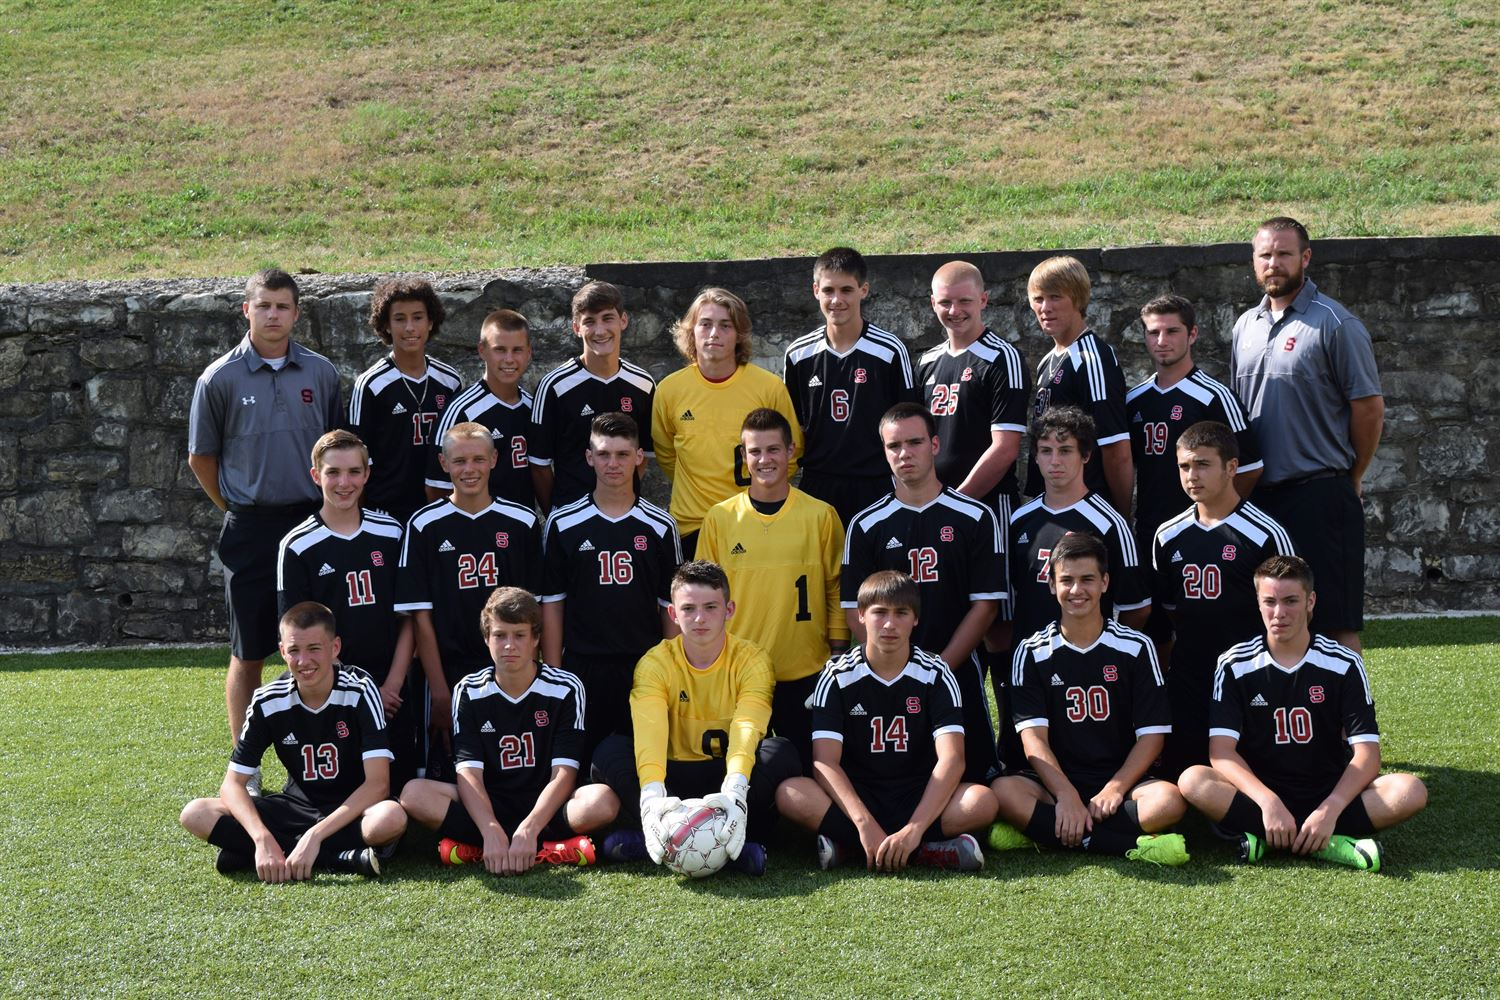 Southmoreland High School - Boys' Varsity Soccer